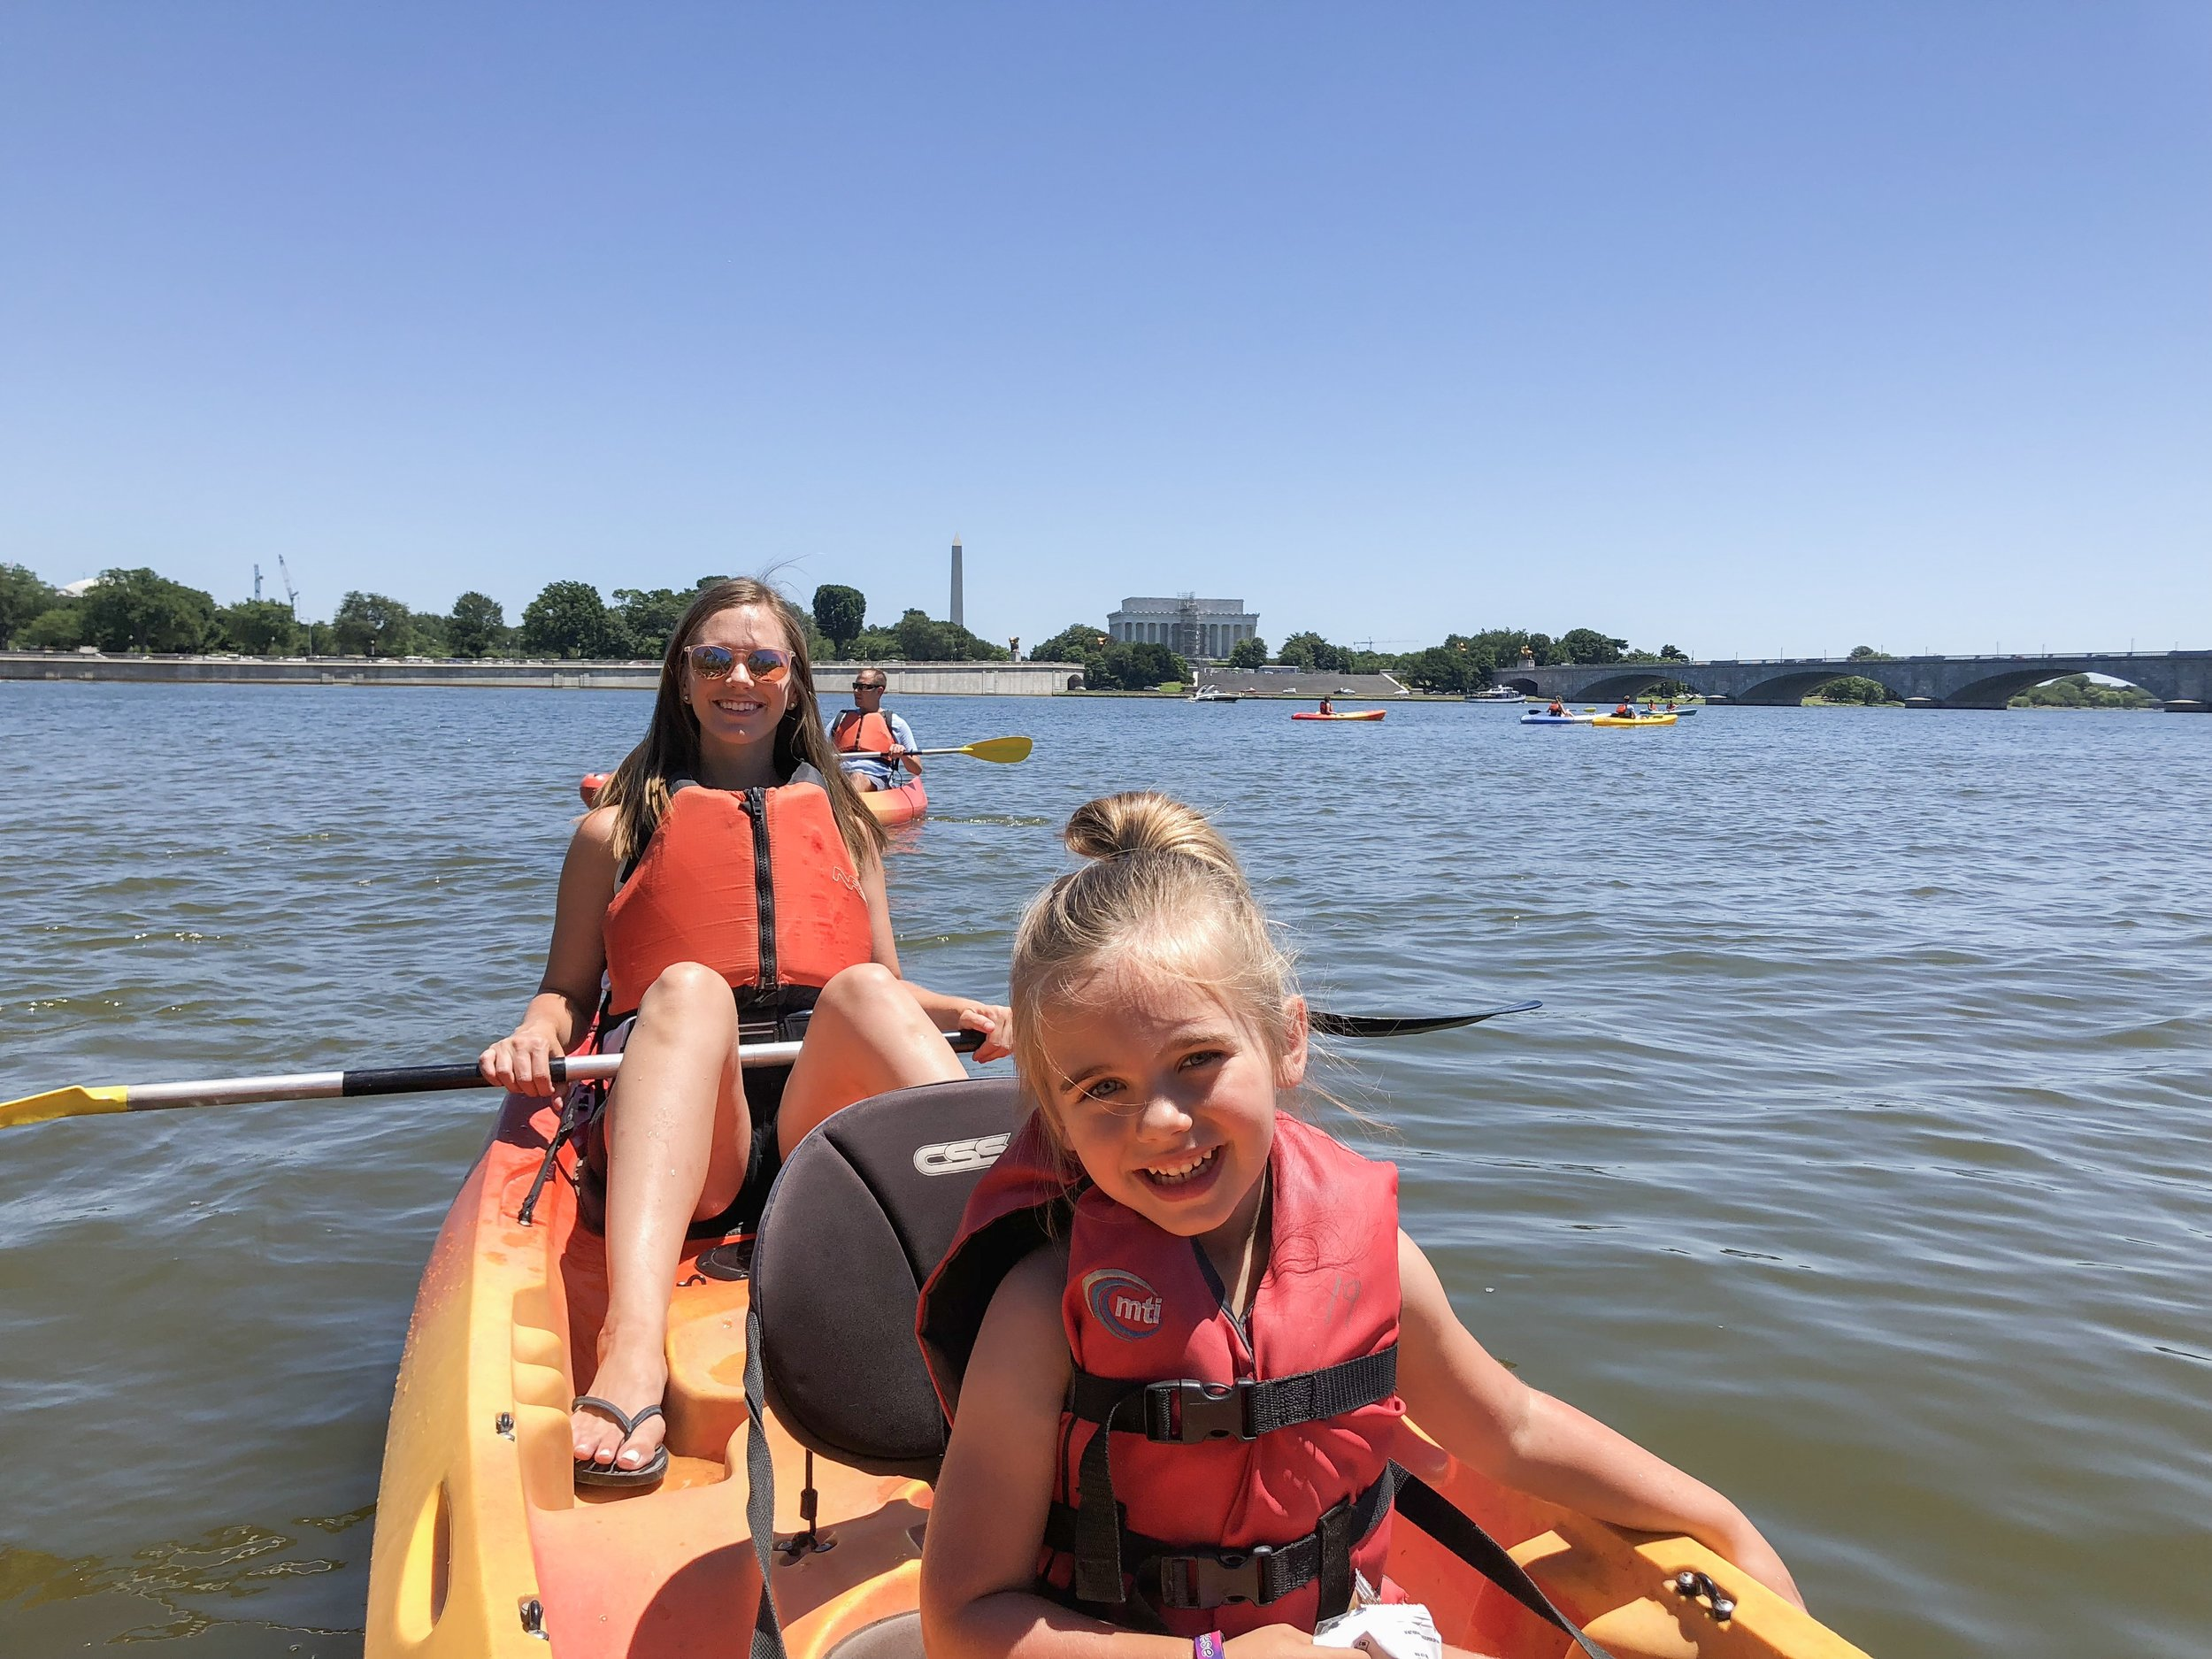 Mom and daughter kayaking in Washington D.C. with Washington Monument and Lincoln memorial in the background.